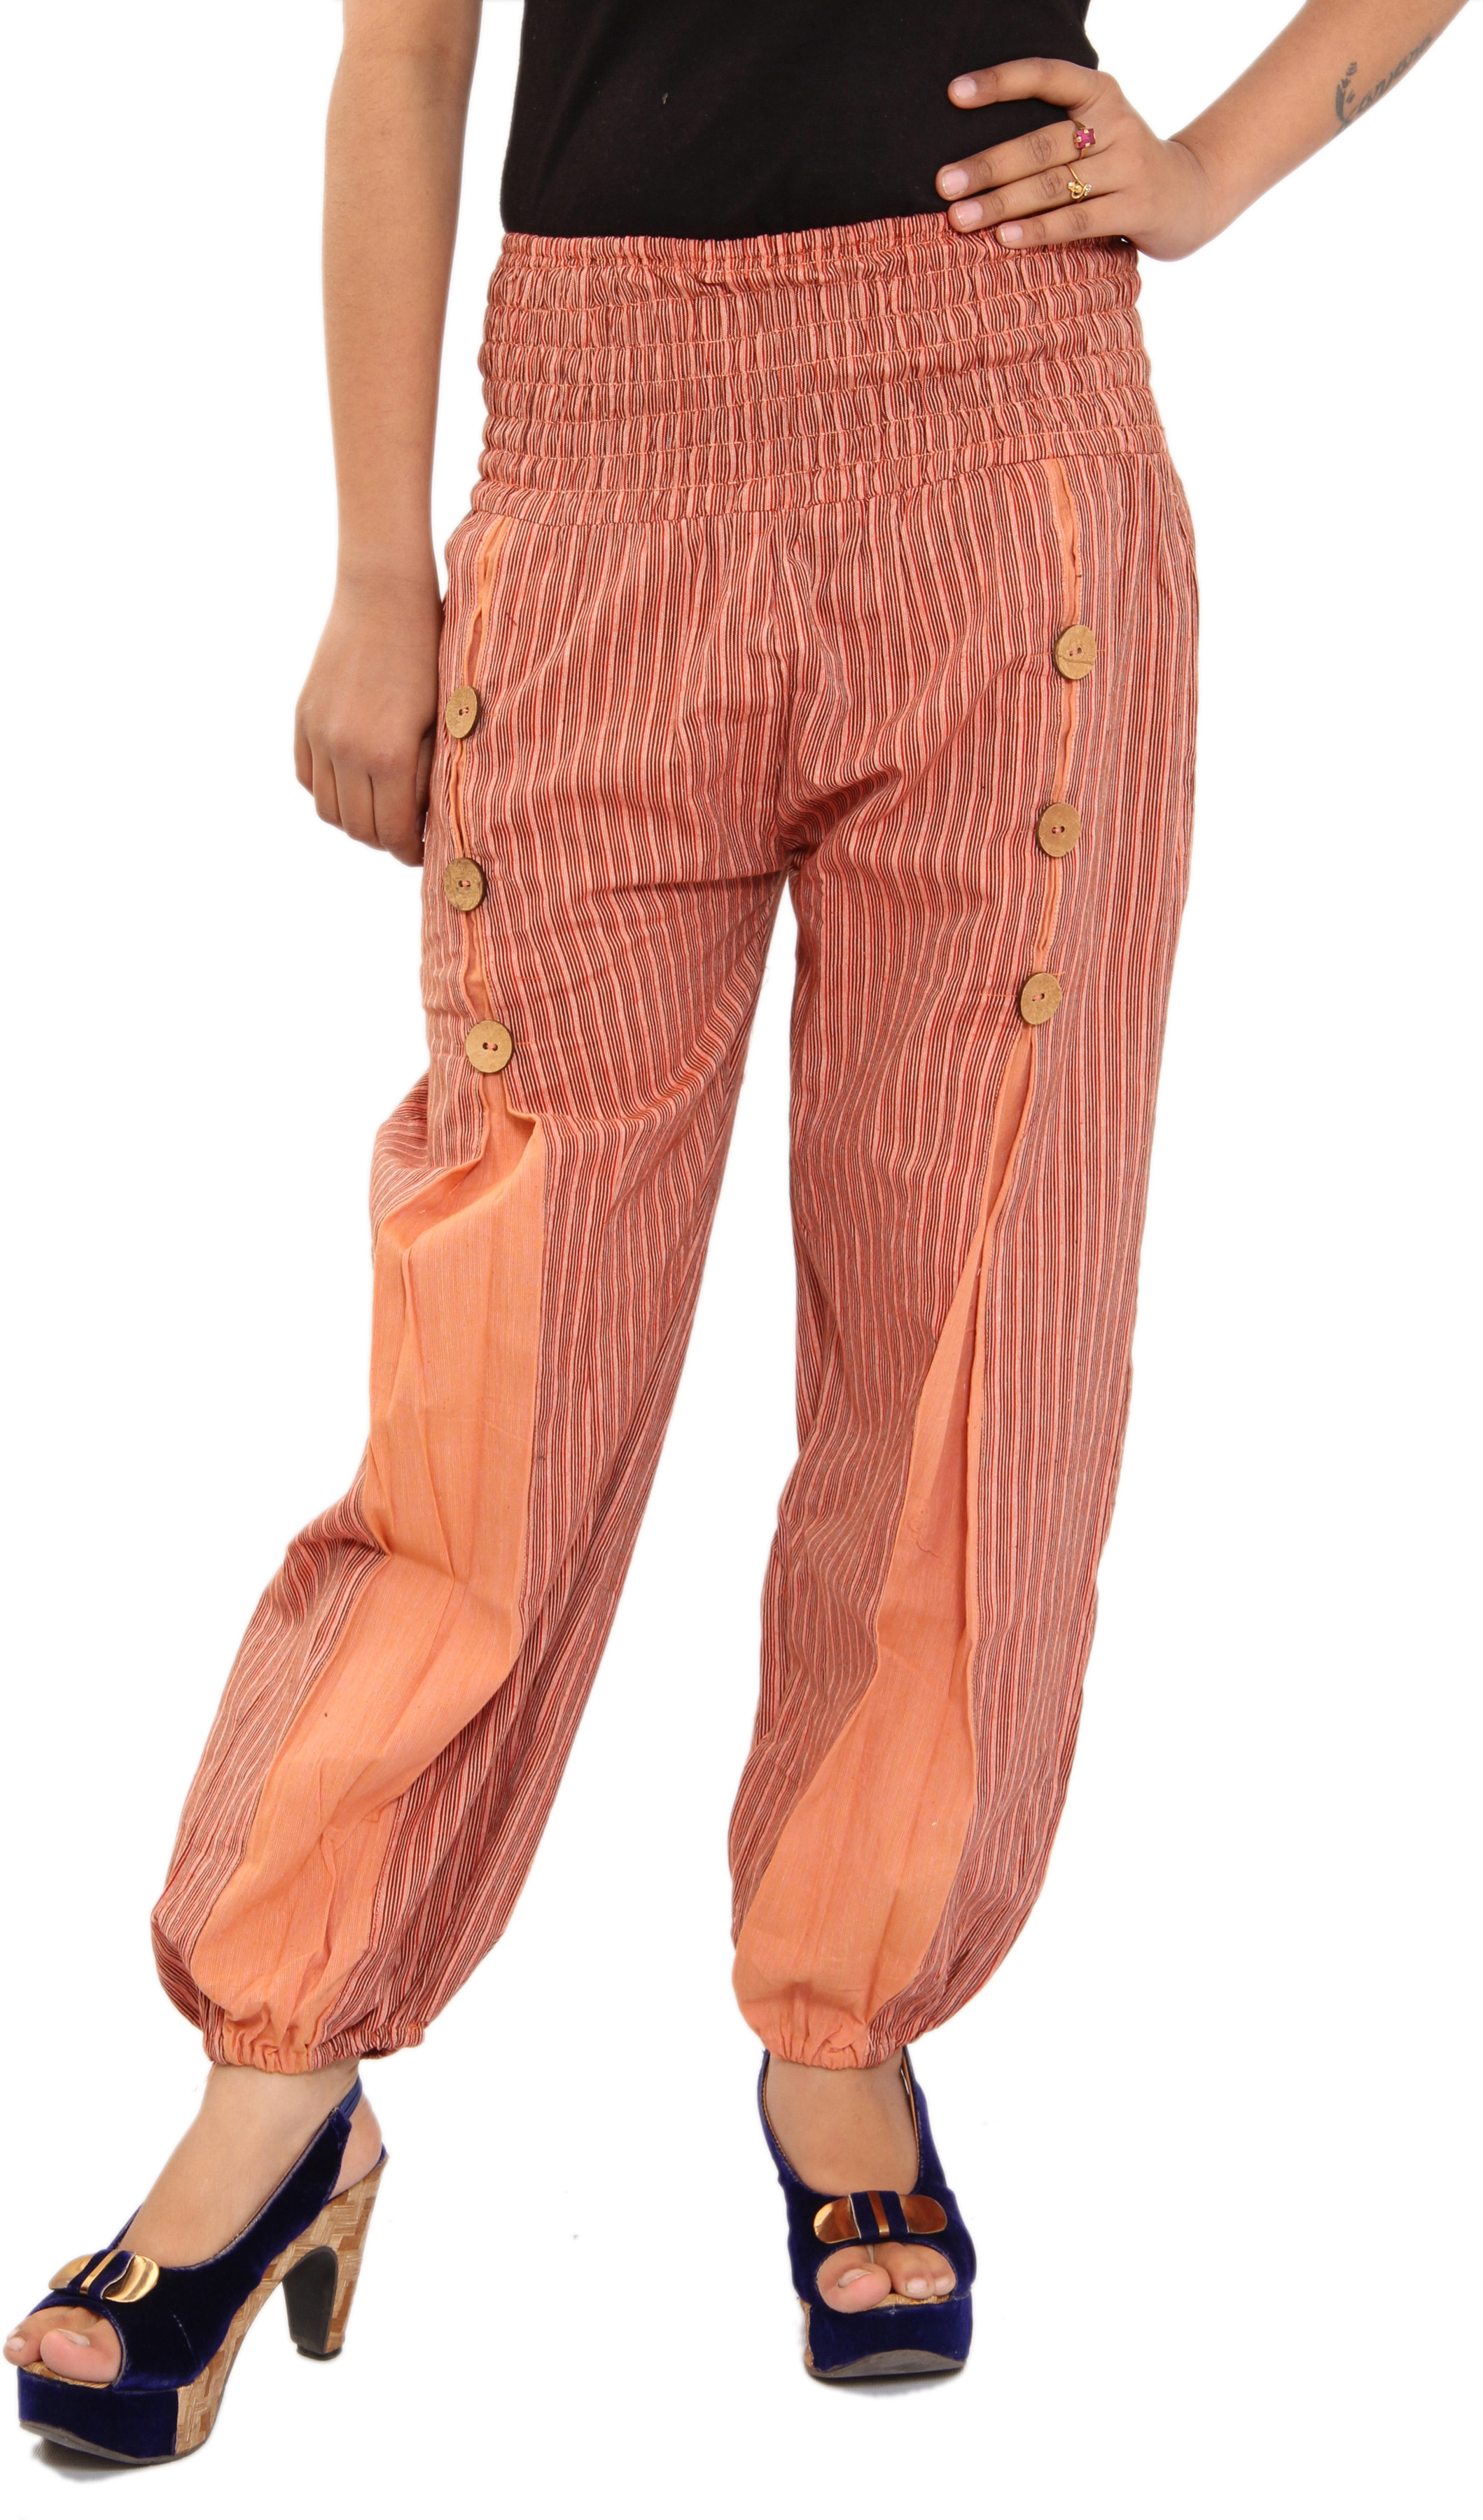 Shop Rajasthan Self Design Cotton Womens Harem Pants